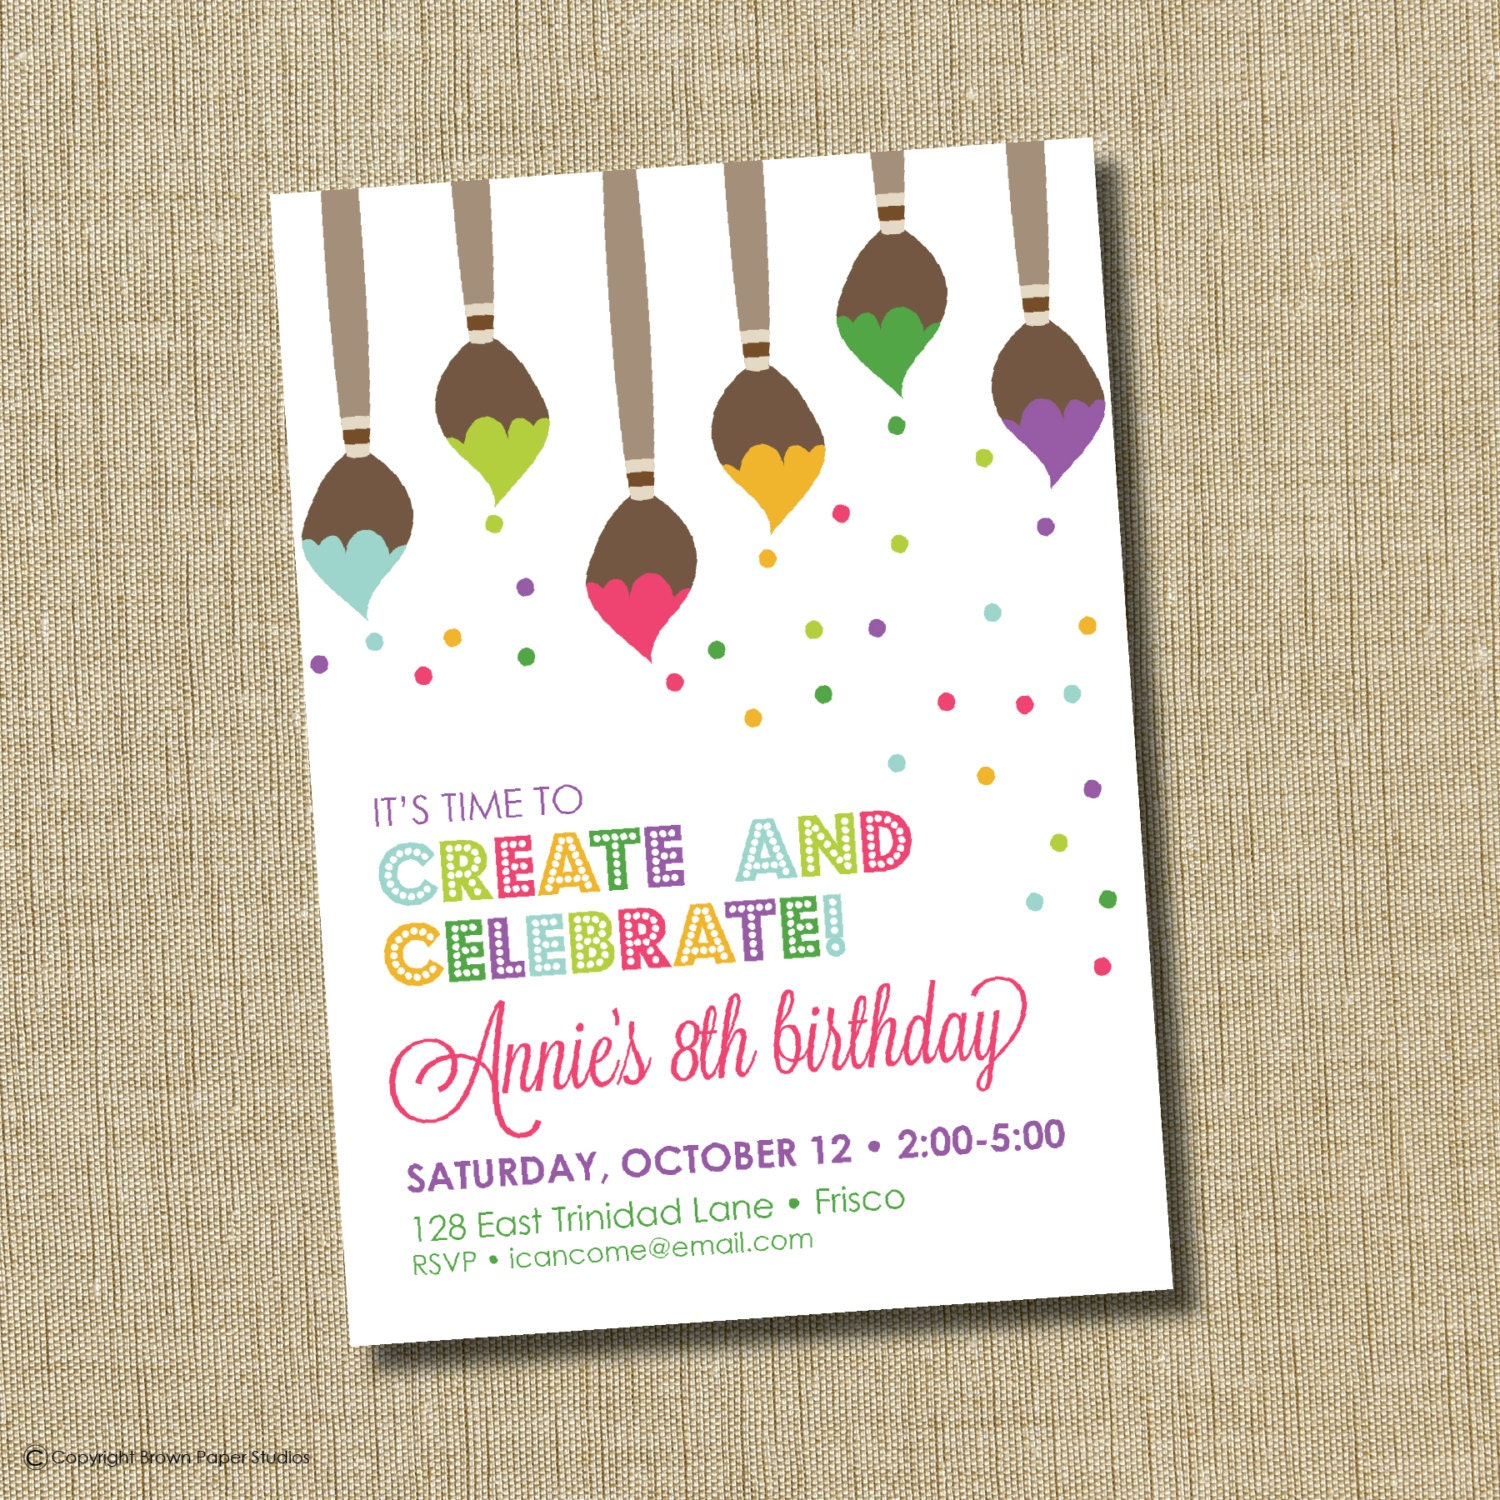 Pottery Painting Birthday Party Invitations for great invitations ideas